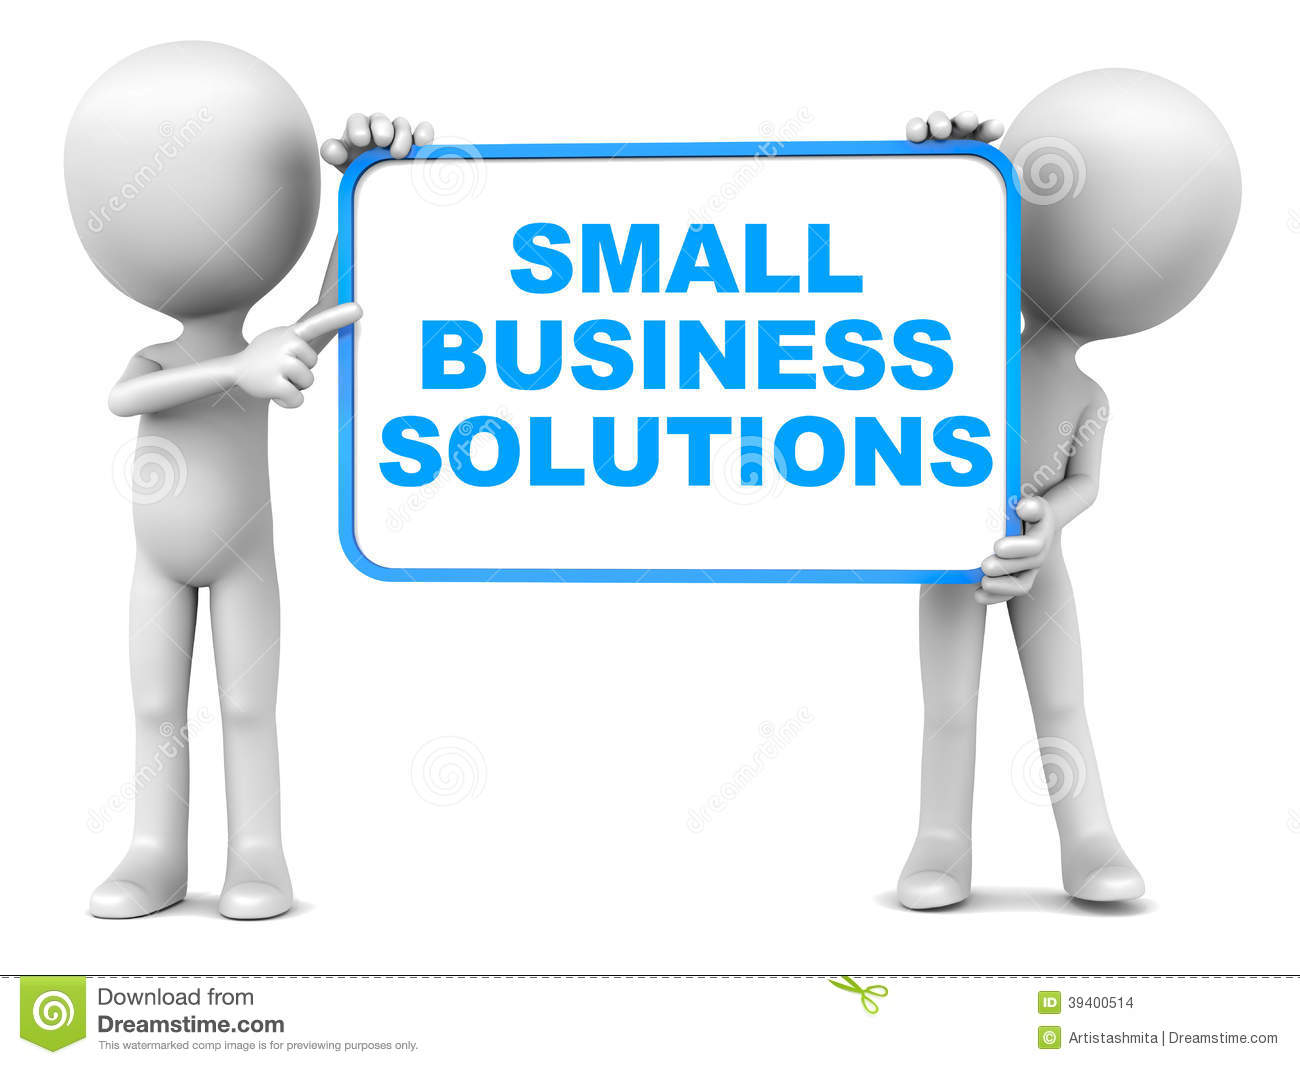 Small business enterprises